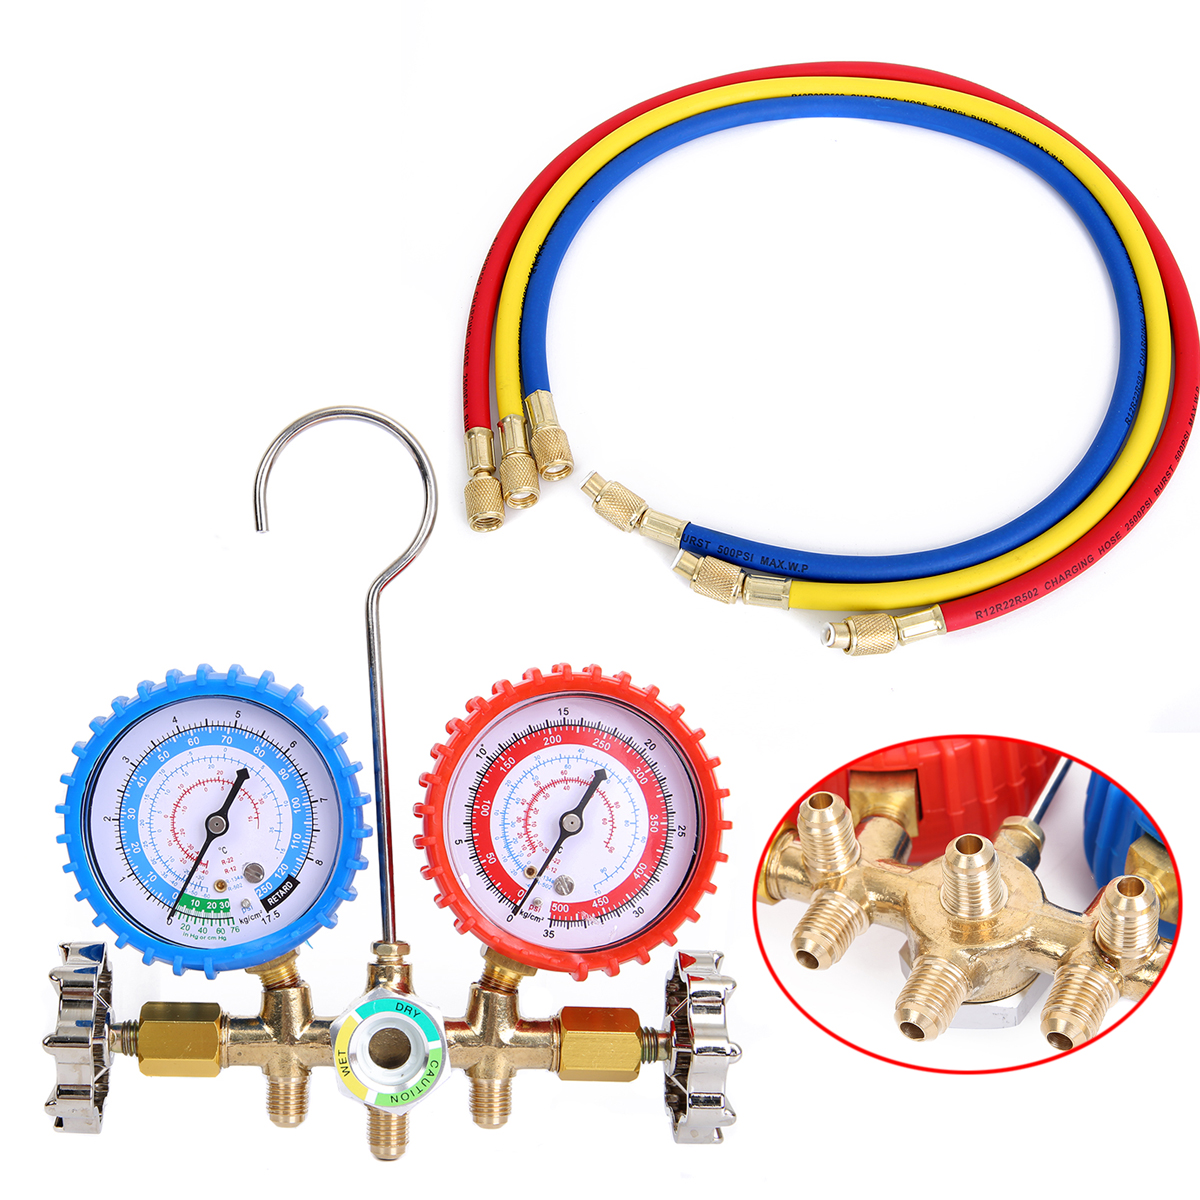 0 10Mpa Manifold Gauge Set Air Condition Refrigeration Charging Manifold Gauge Repair Tool For R134A R12 R22 R404z in Pressure Gauges from Tools